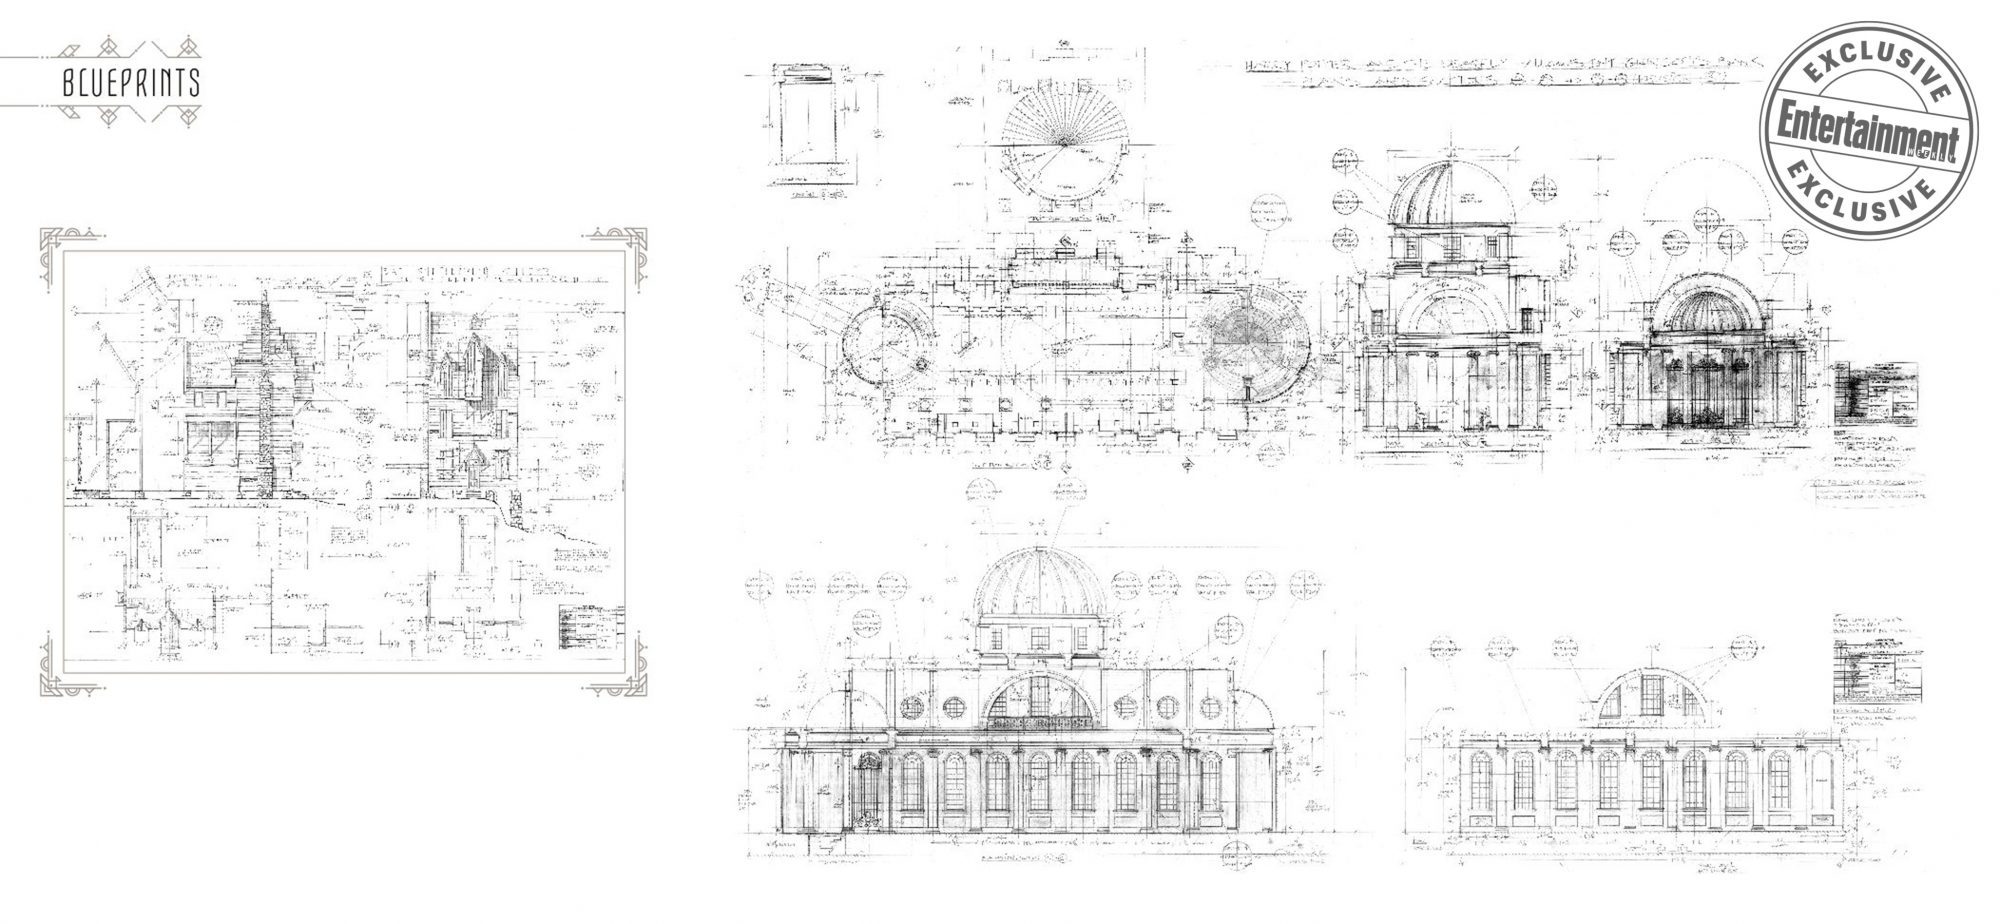 ArtofHP_gatefold-blueprints_080217